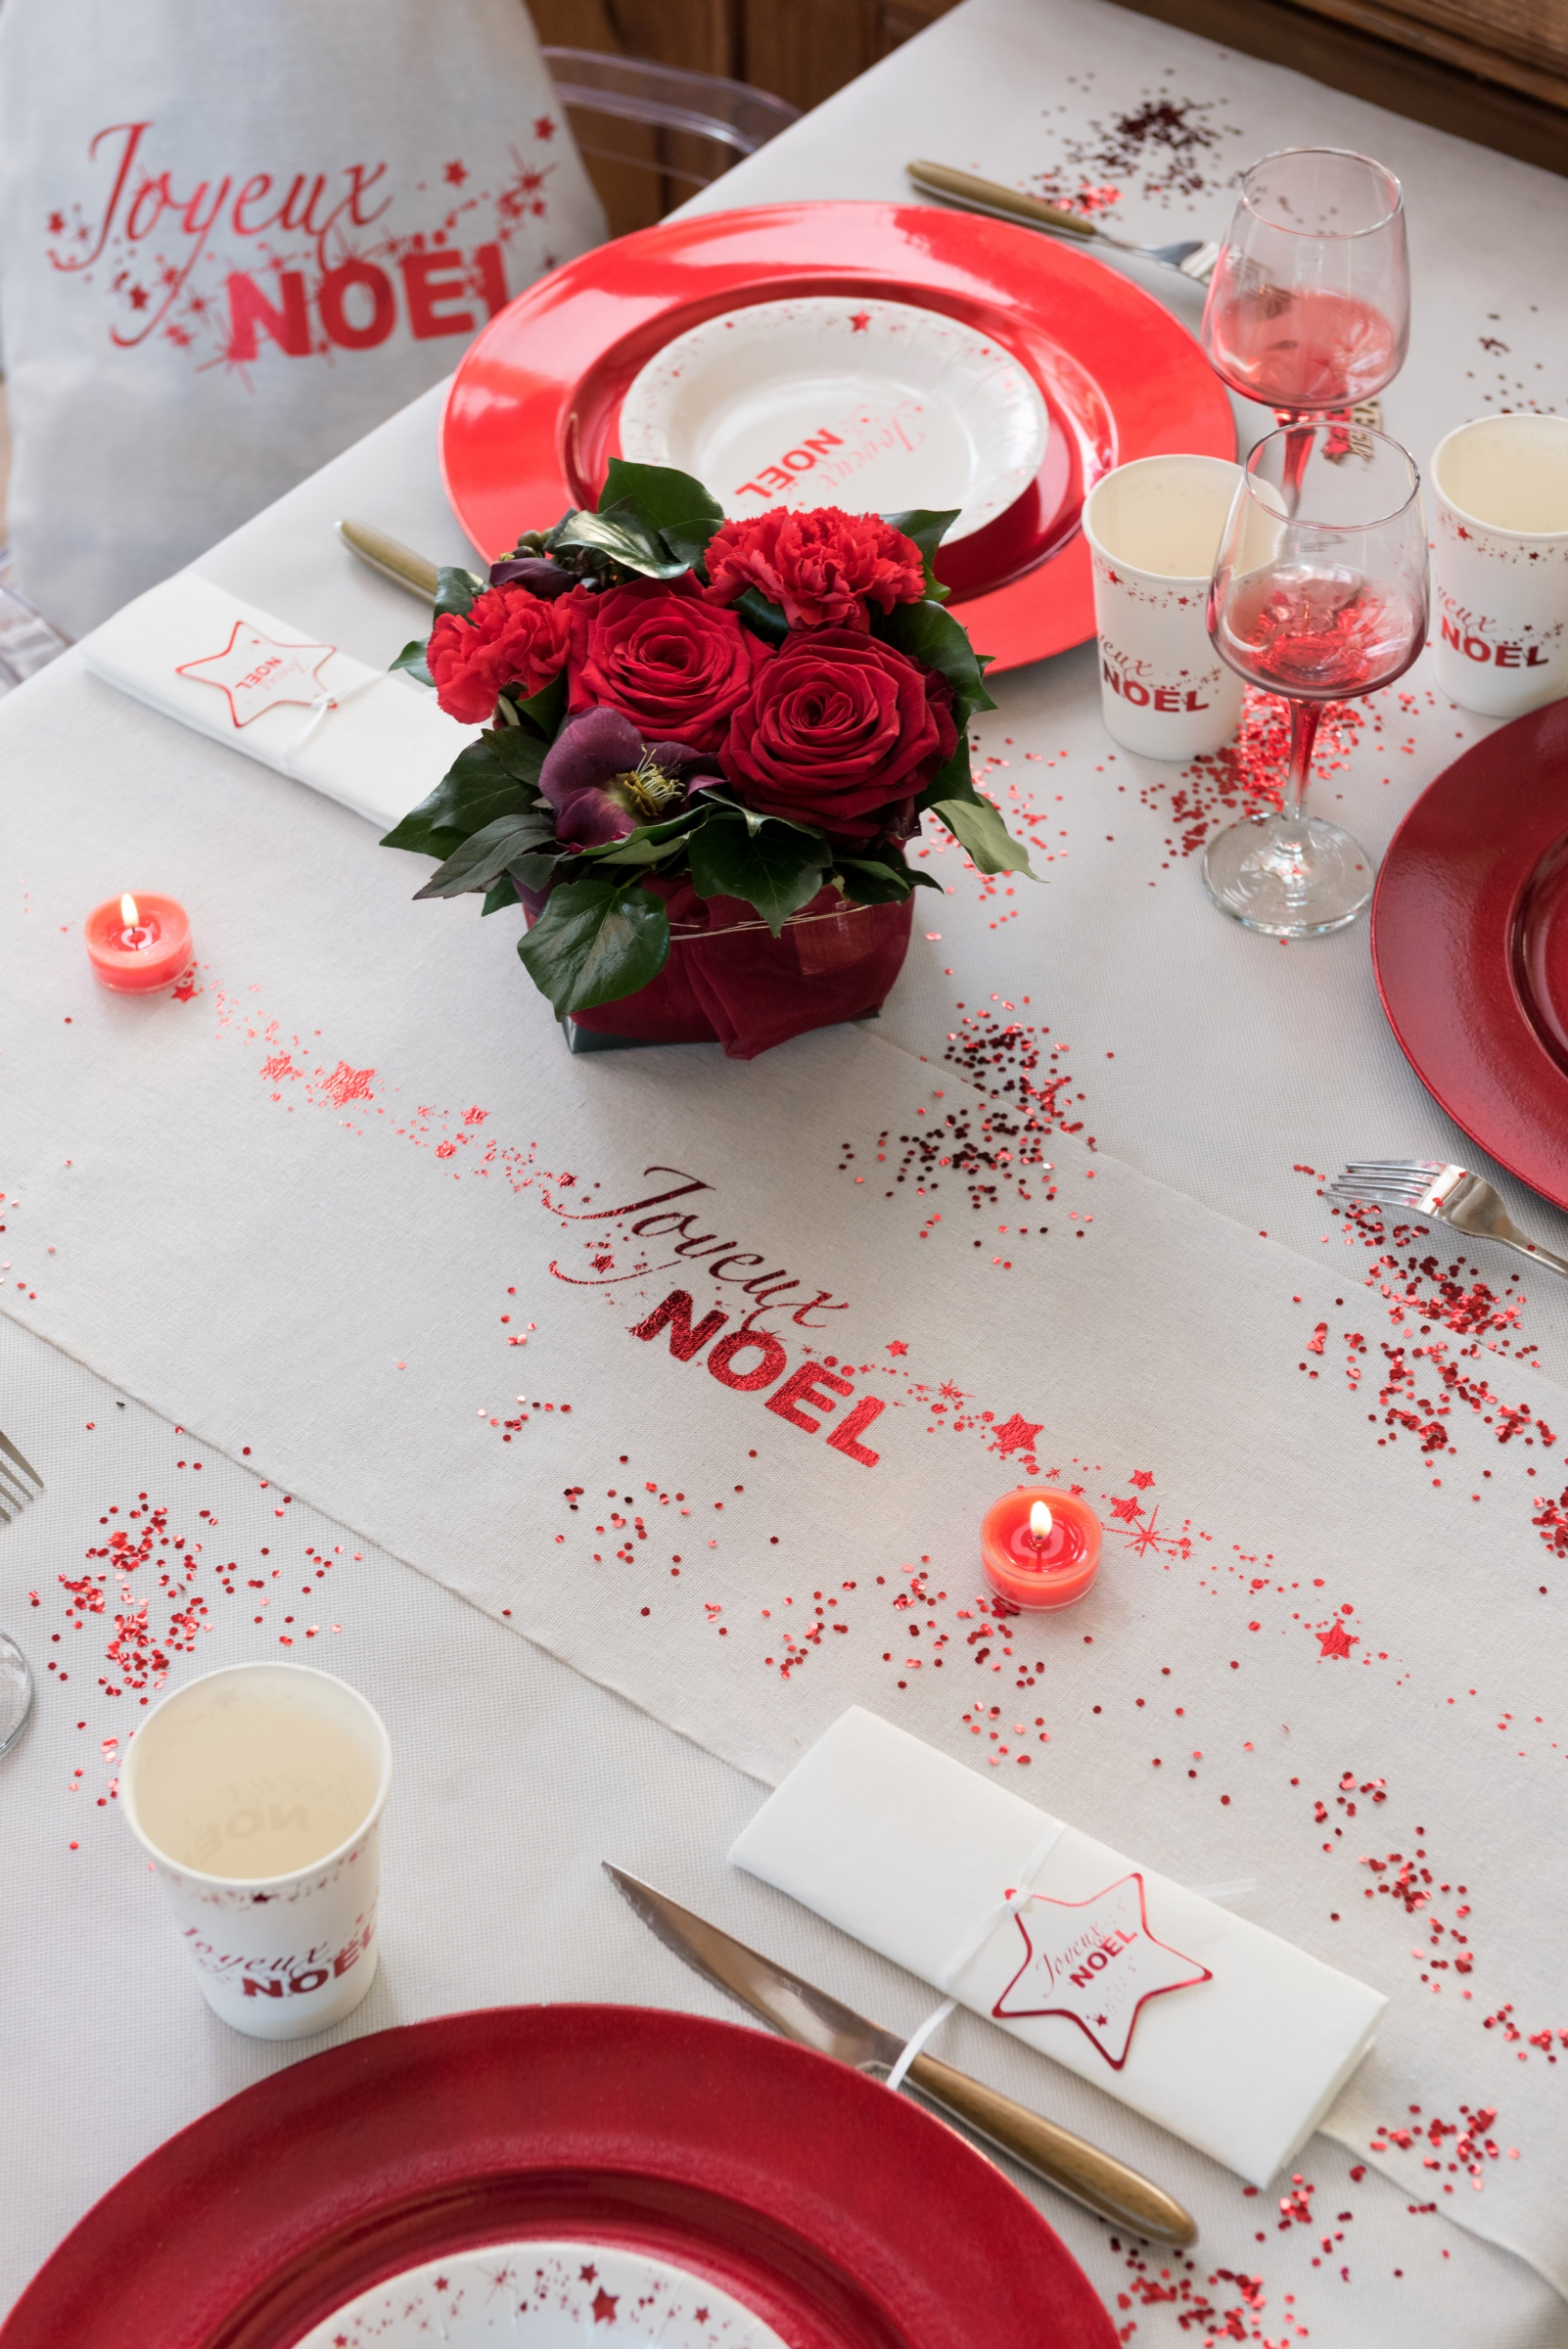 chemin de table en coton joyeux no l blanc et rouge 3 m. Black Bedroom Furniture Sets. Home Design Ideas